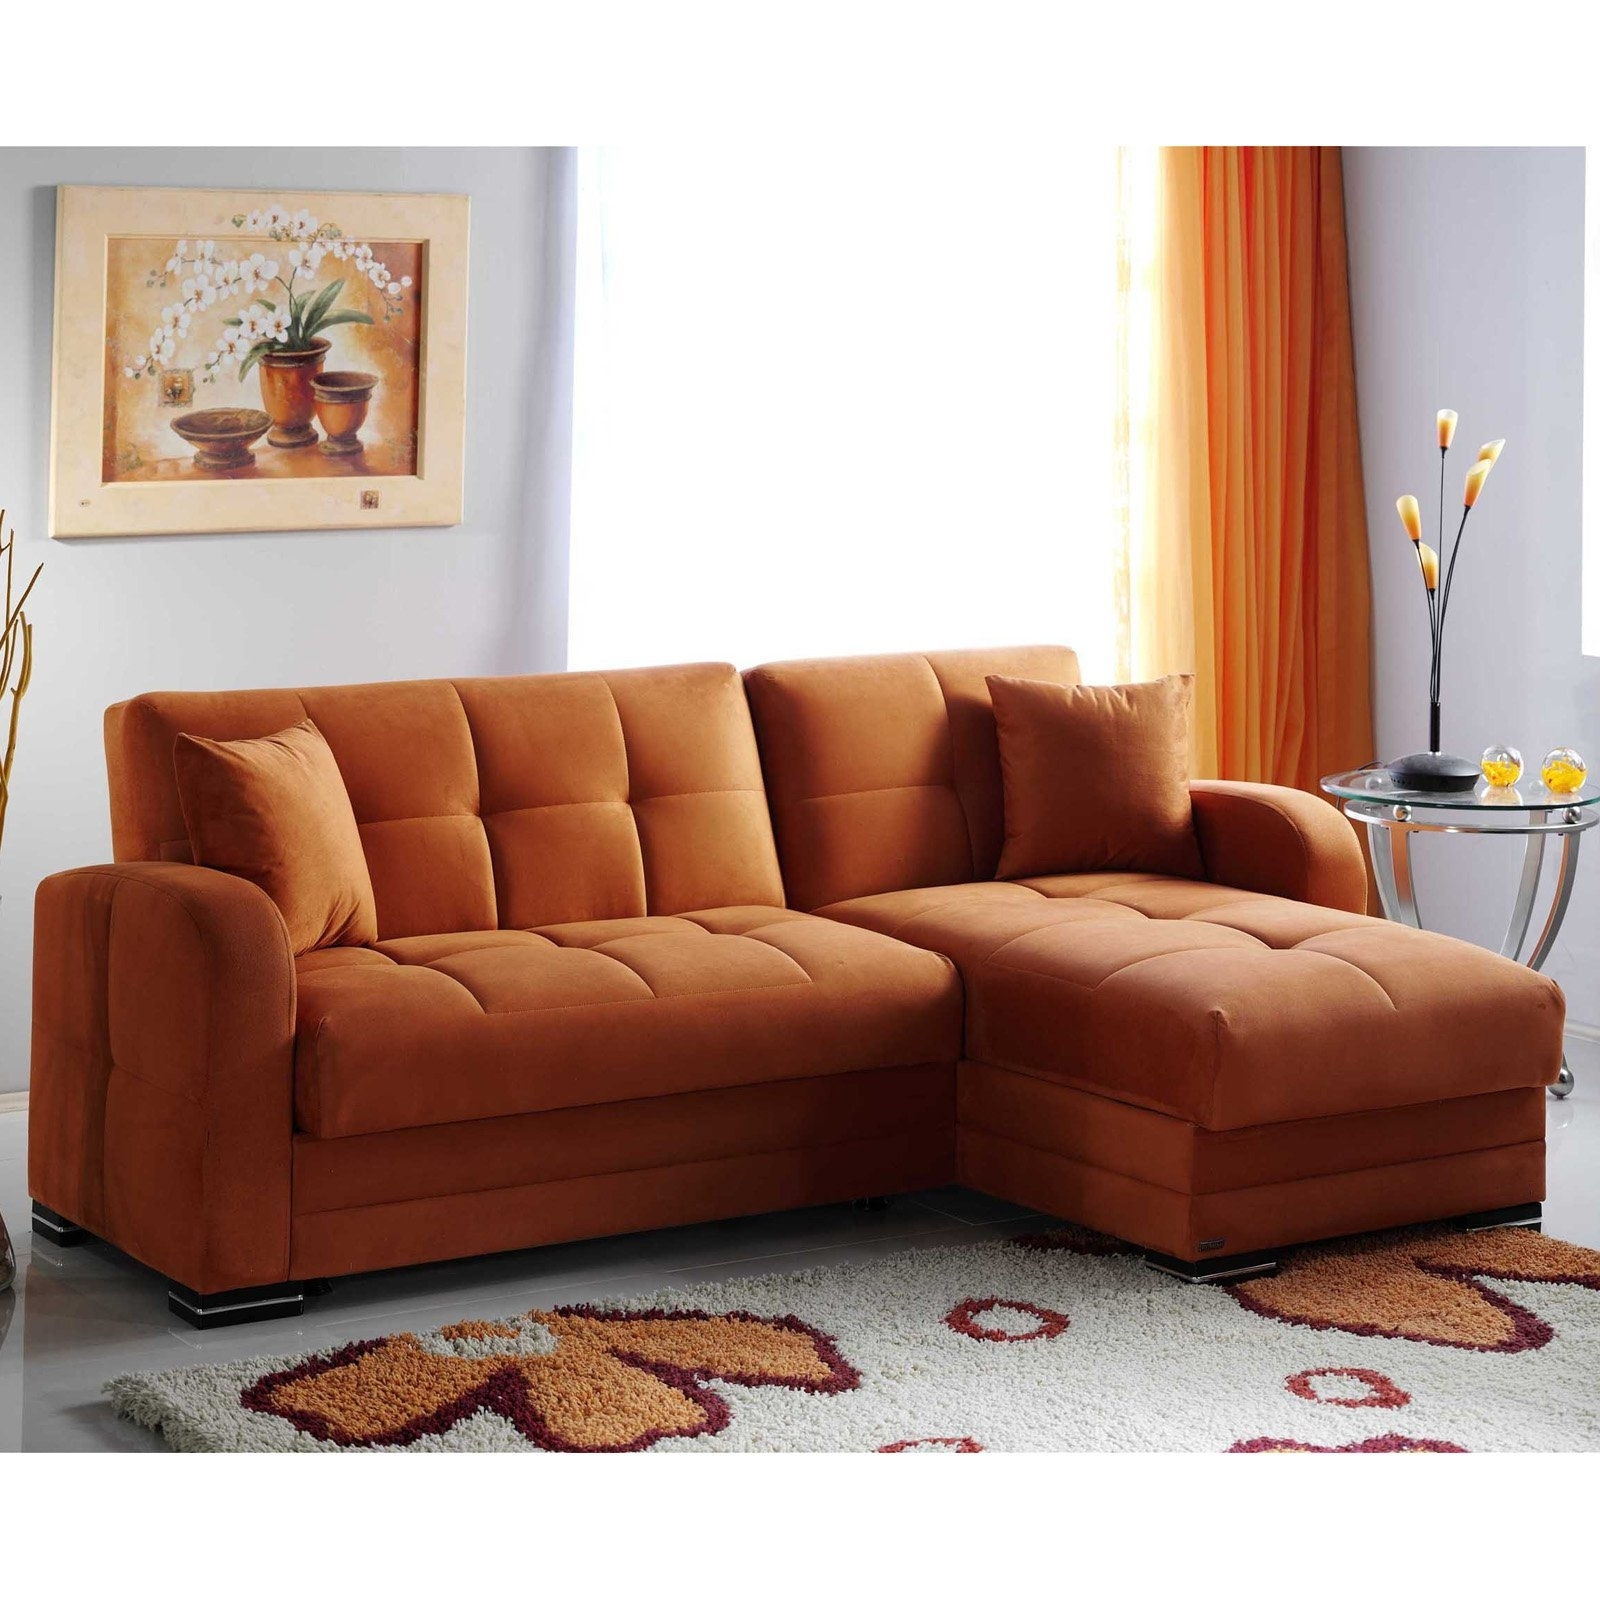 Kubo Sectional Sofa (View 6 of 20)